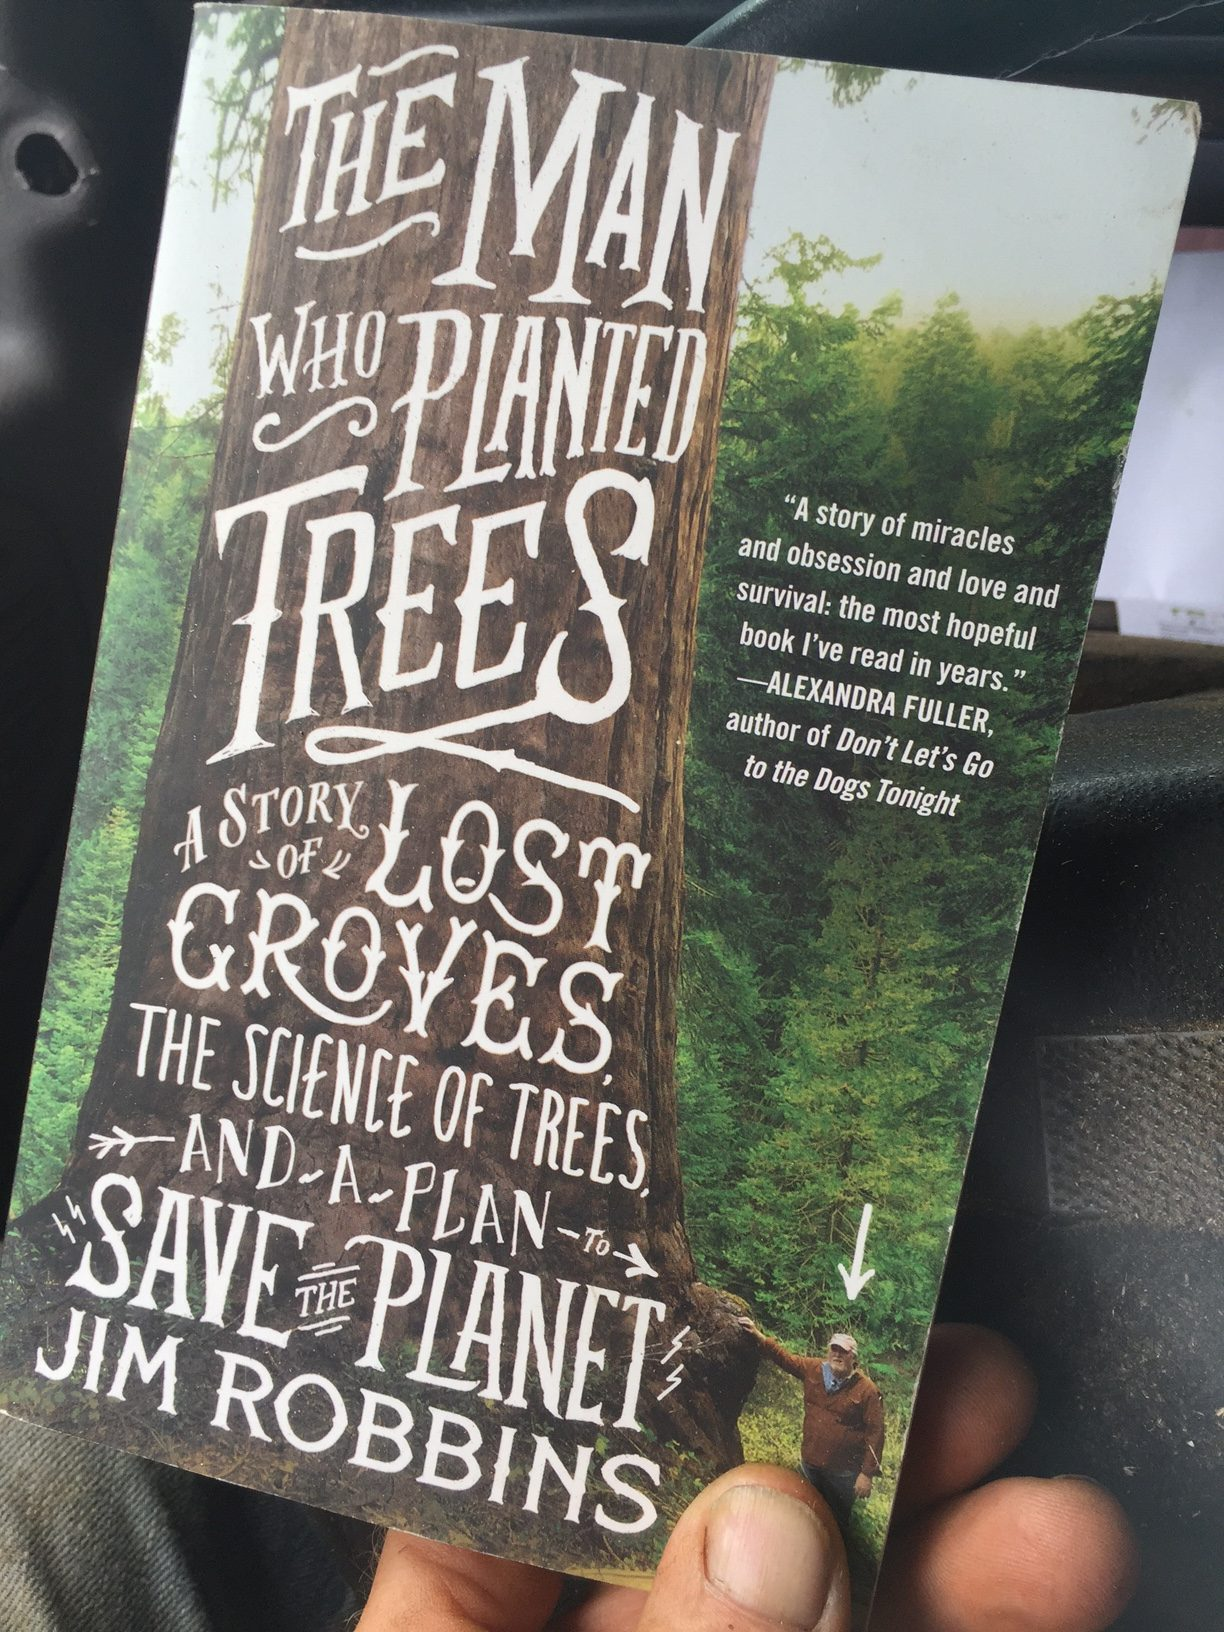 55. A monumental thank you to the man at the center of this book. David Milarch IS The Man Who Planted Trees. David, Thank You for providing us the opportunity to be in the yet-unwritten chapters in the future copy of this book.